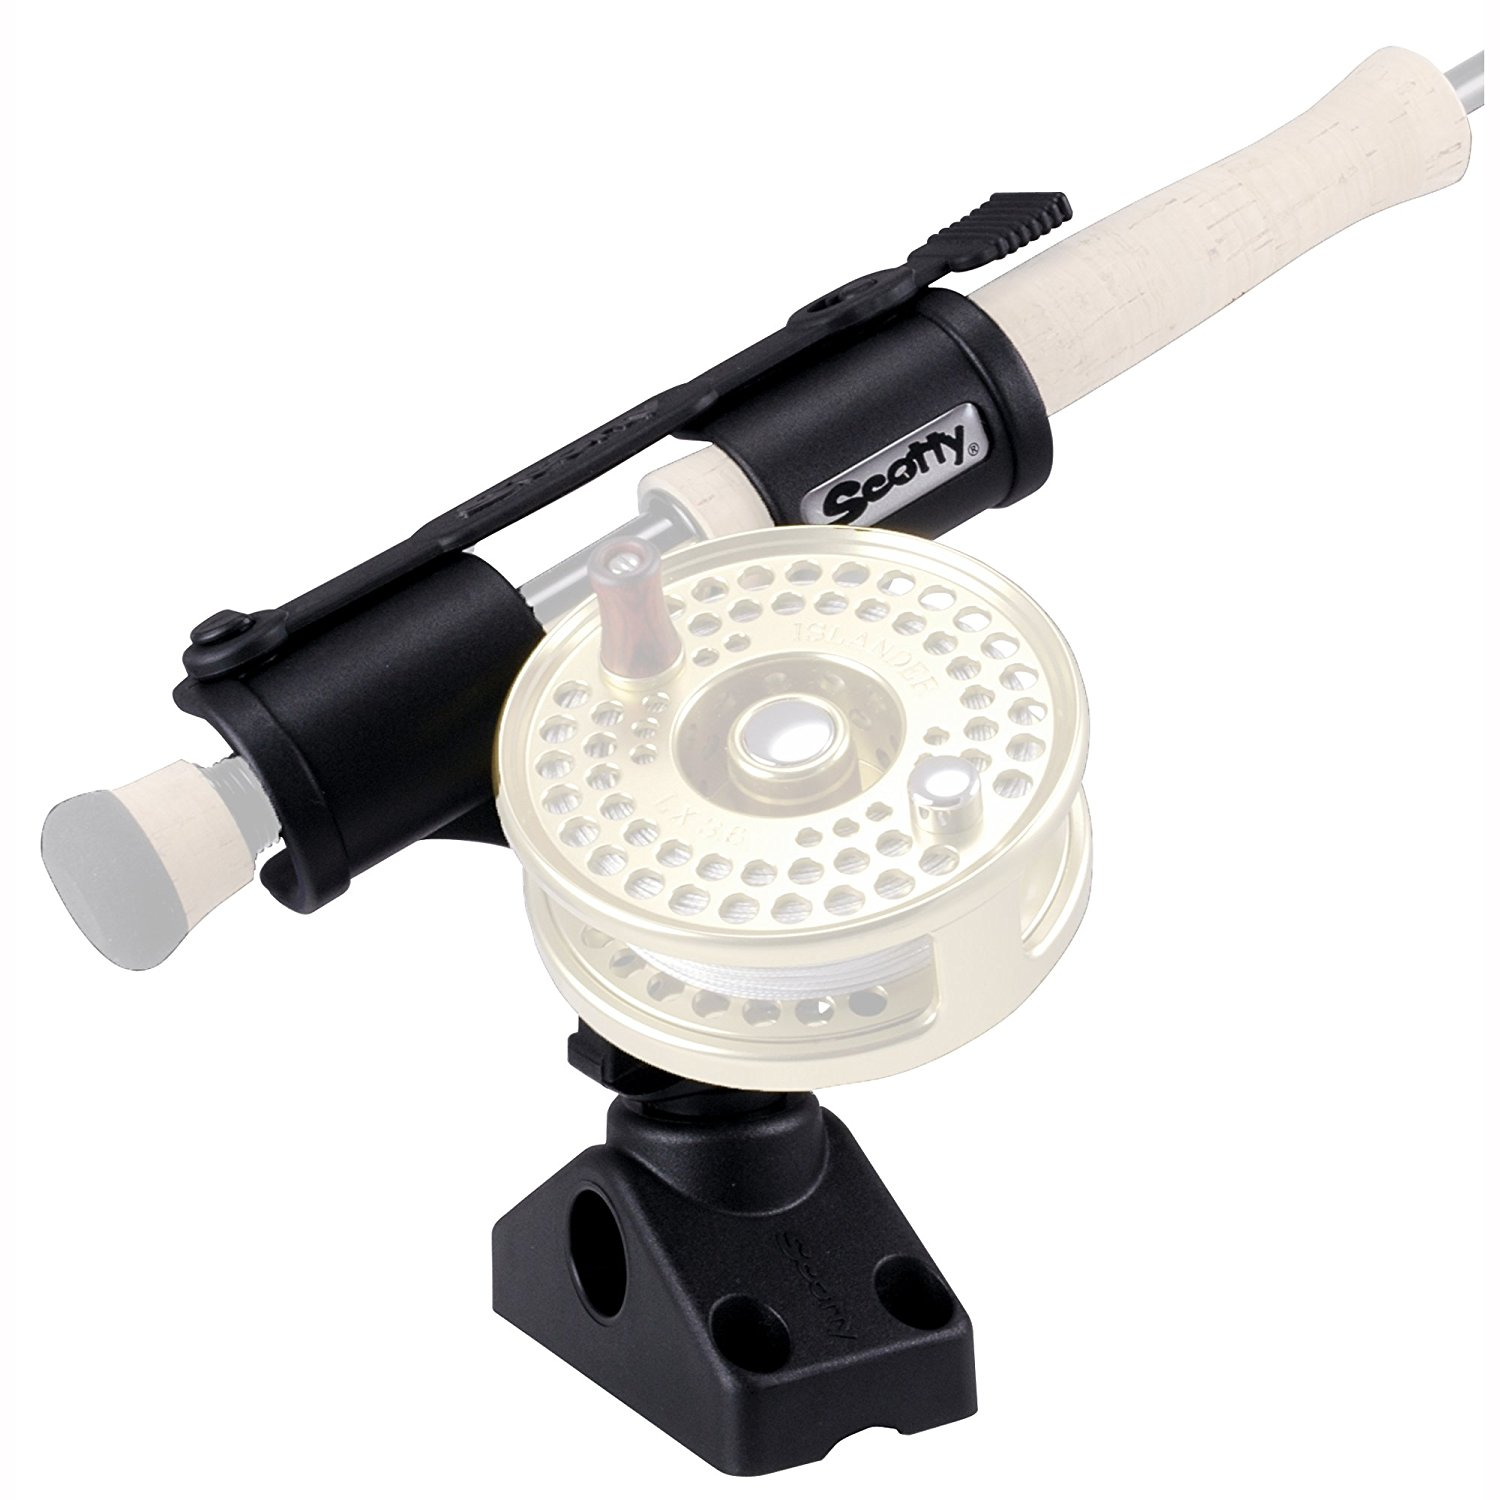 Fly Rod Holder with 241 Side Deck Mount (model 265), New Tube SideDeck Mount Adapter Drink without Hldr 311 Rail model Sports BaitcasterSpinning Rod Wearable.., By Scotty